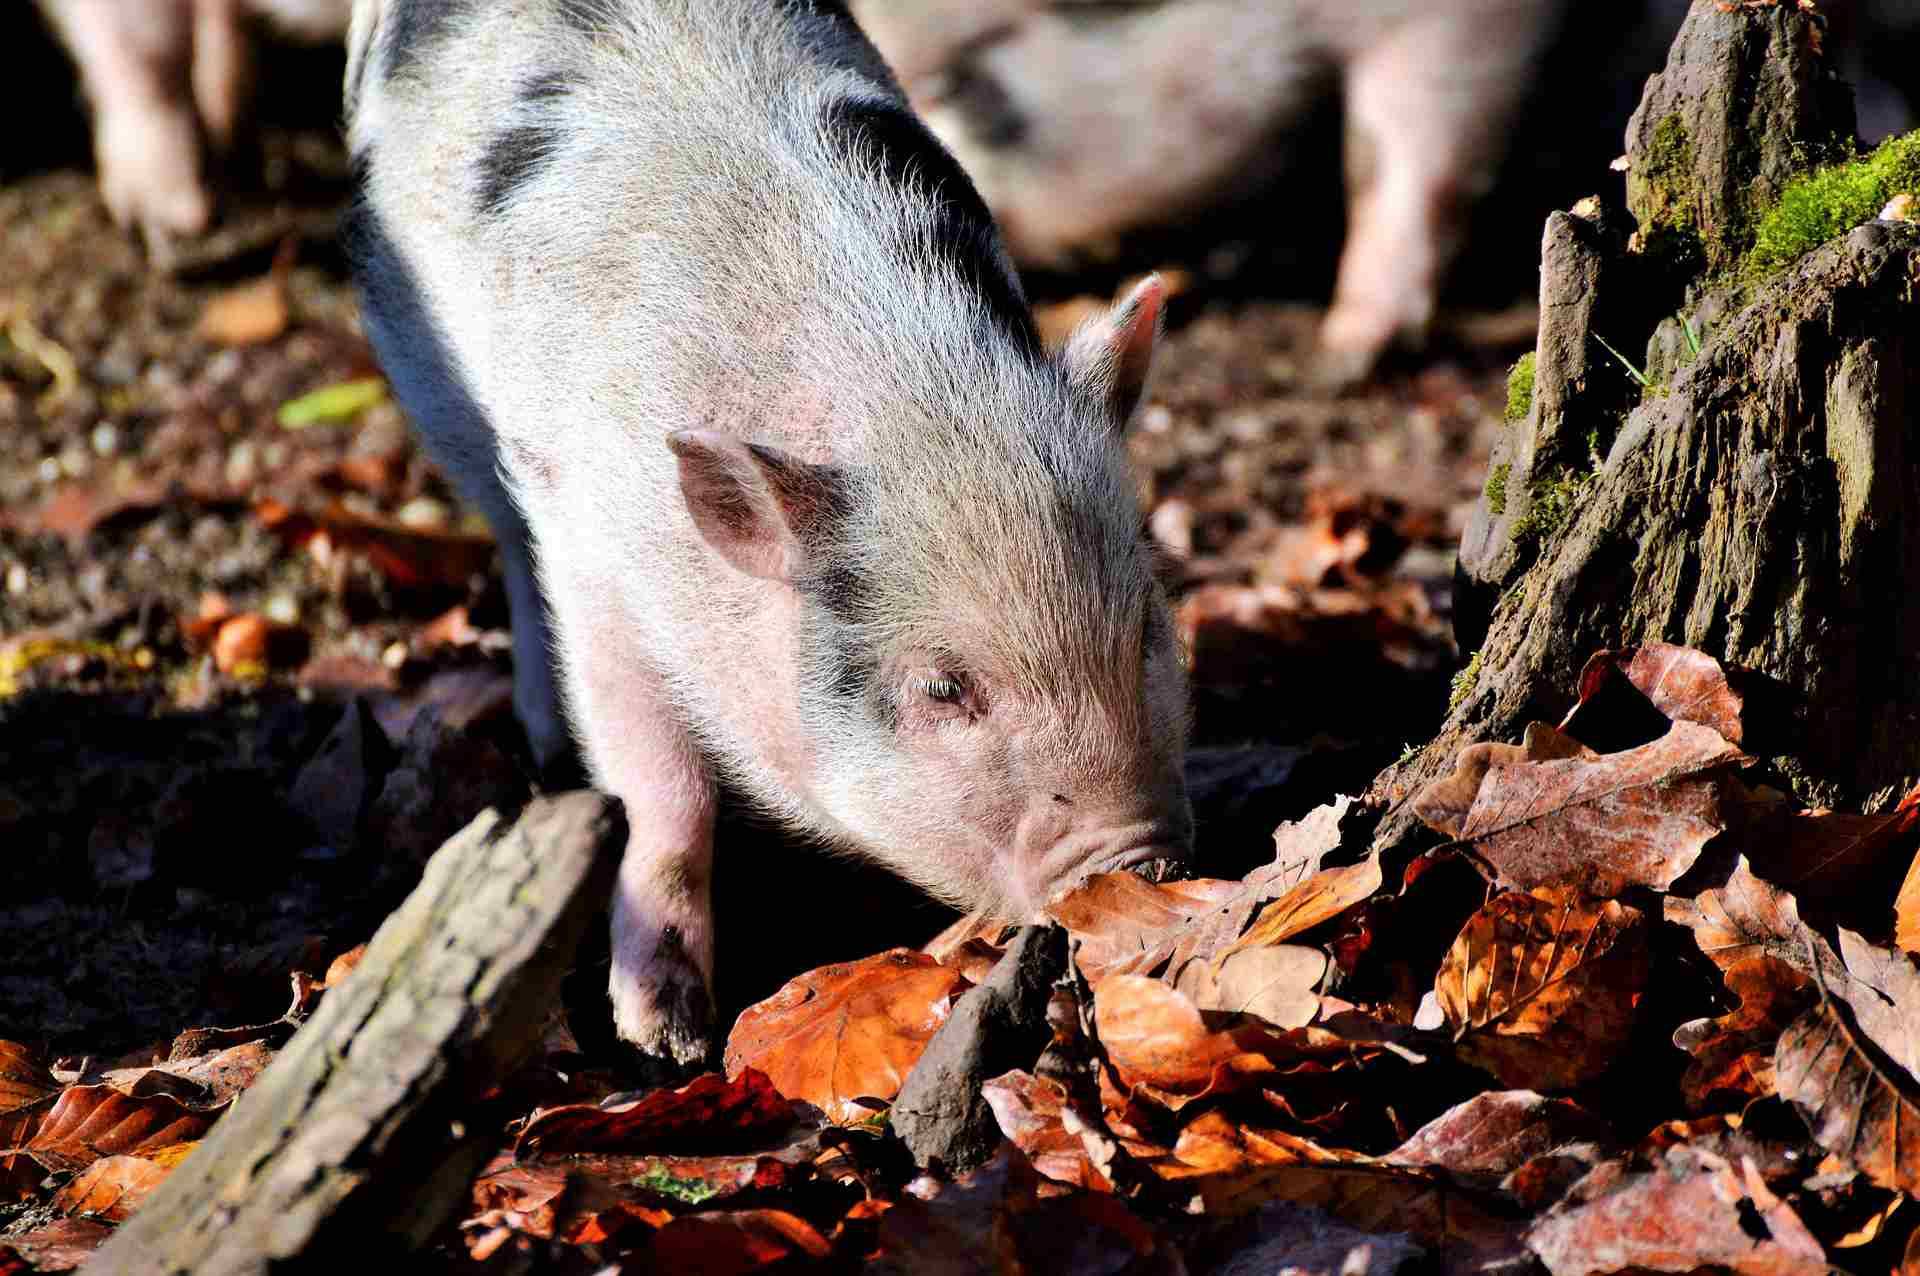 A potbellied pig rooting outdoors.